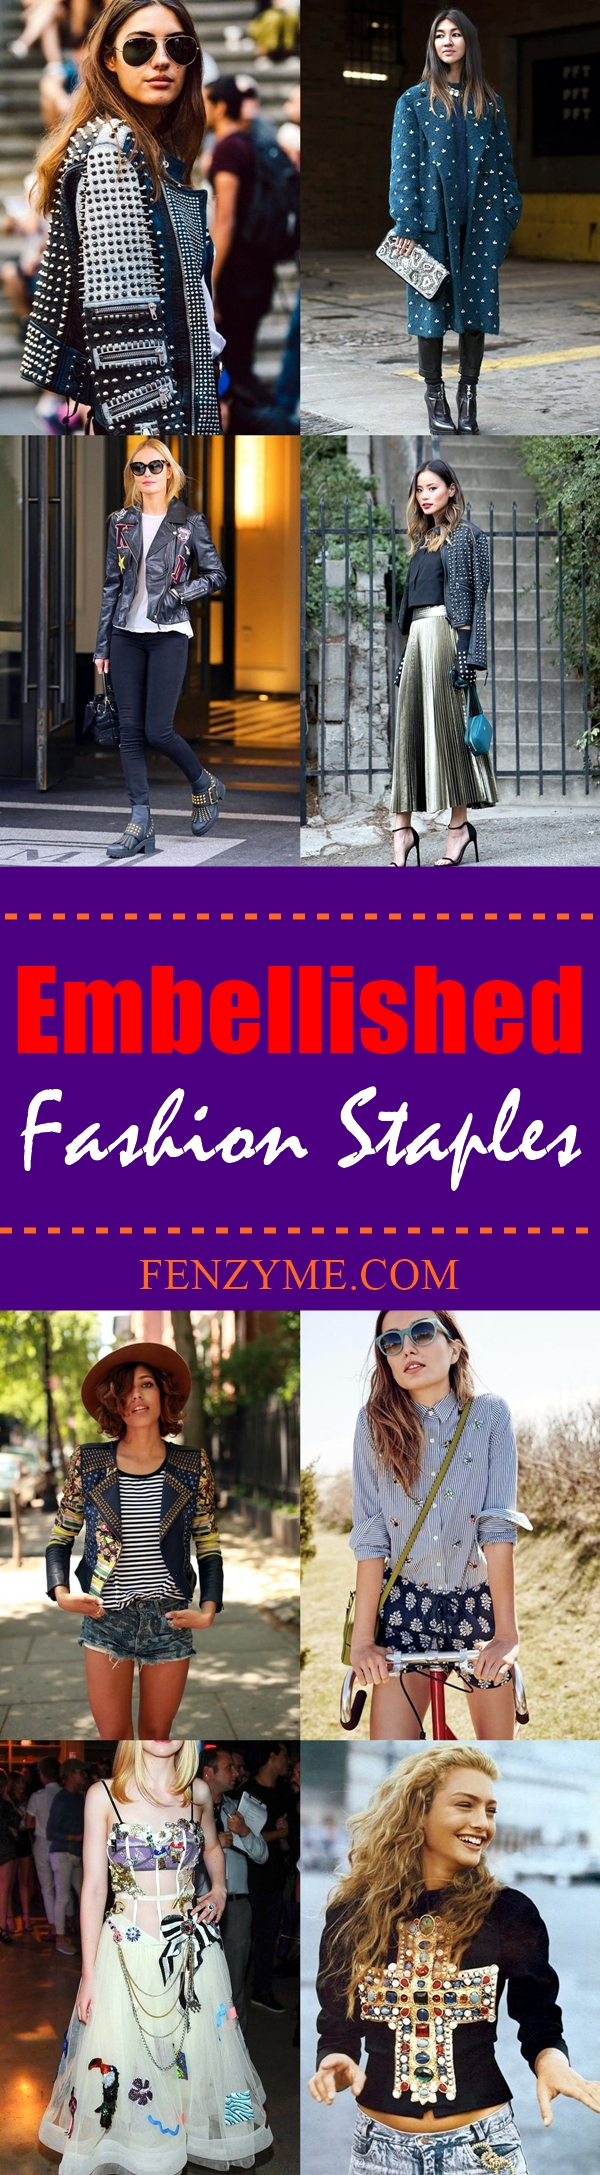 embellished-fashion-staples-9-tile